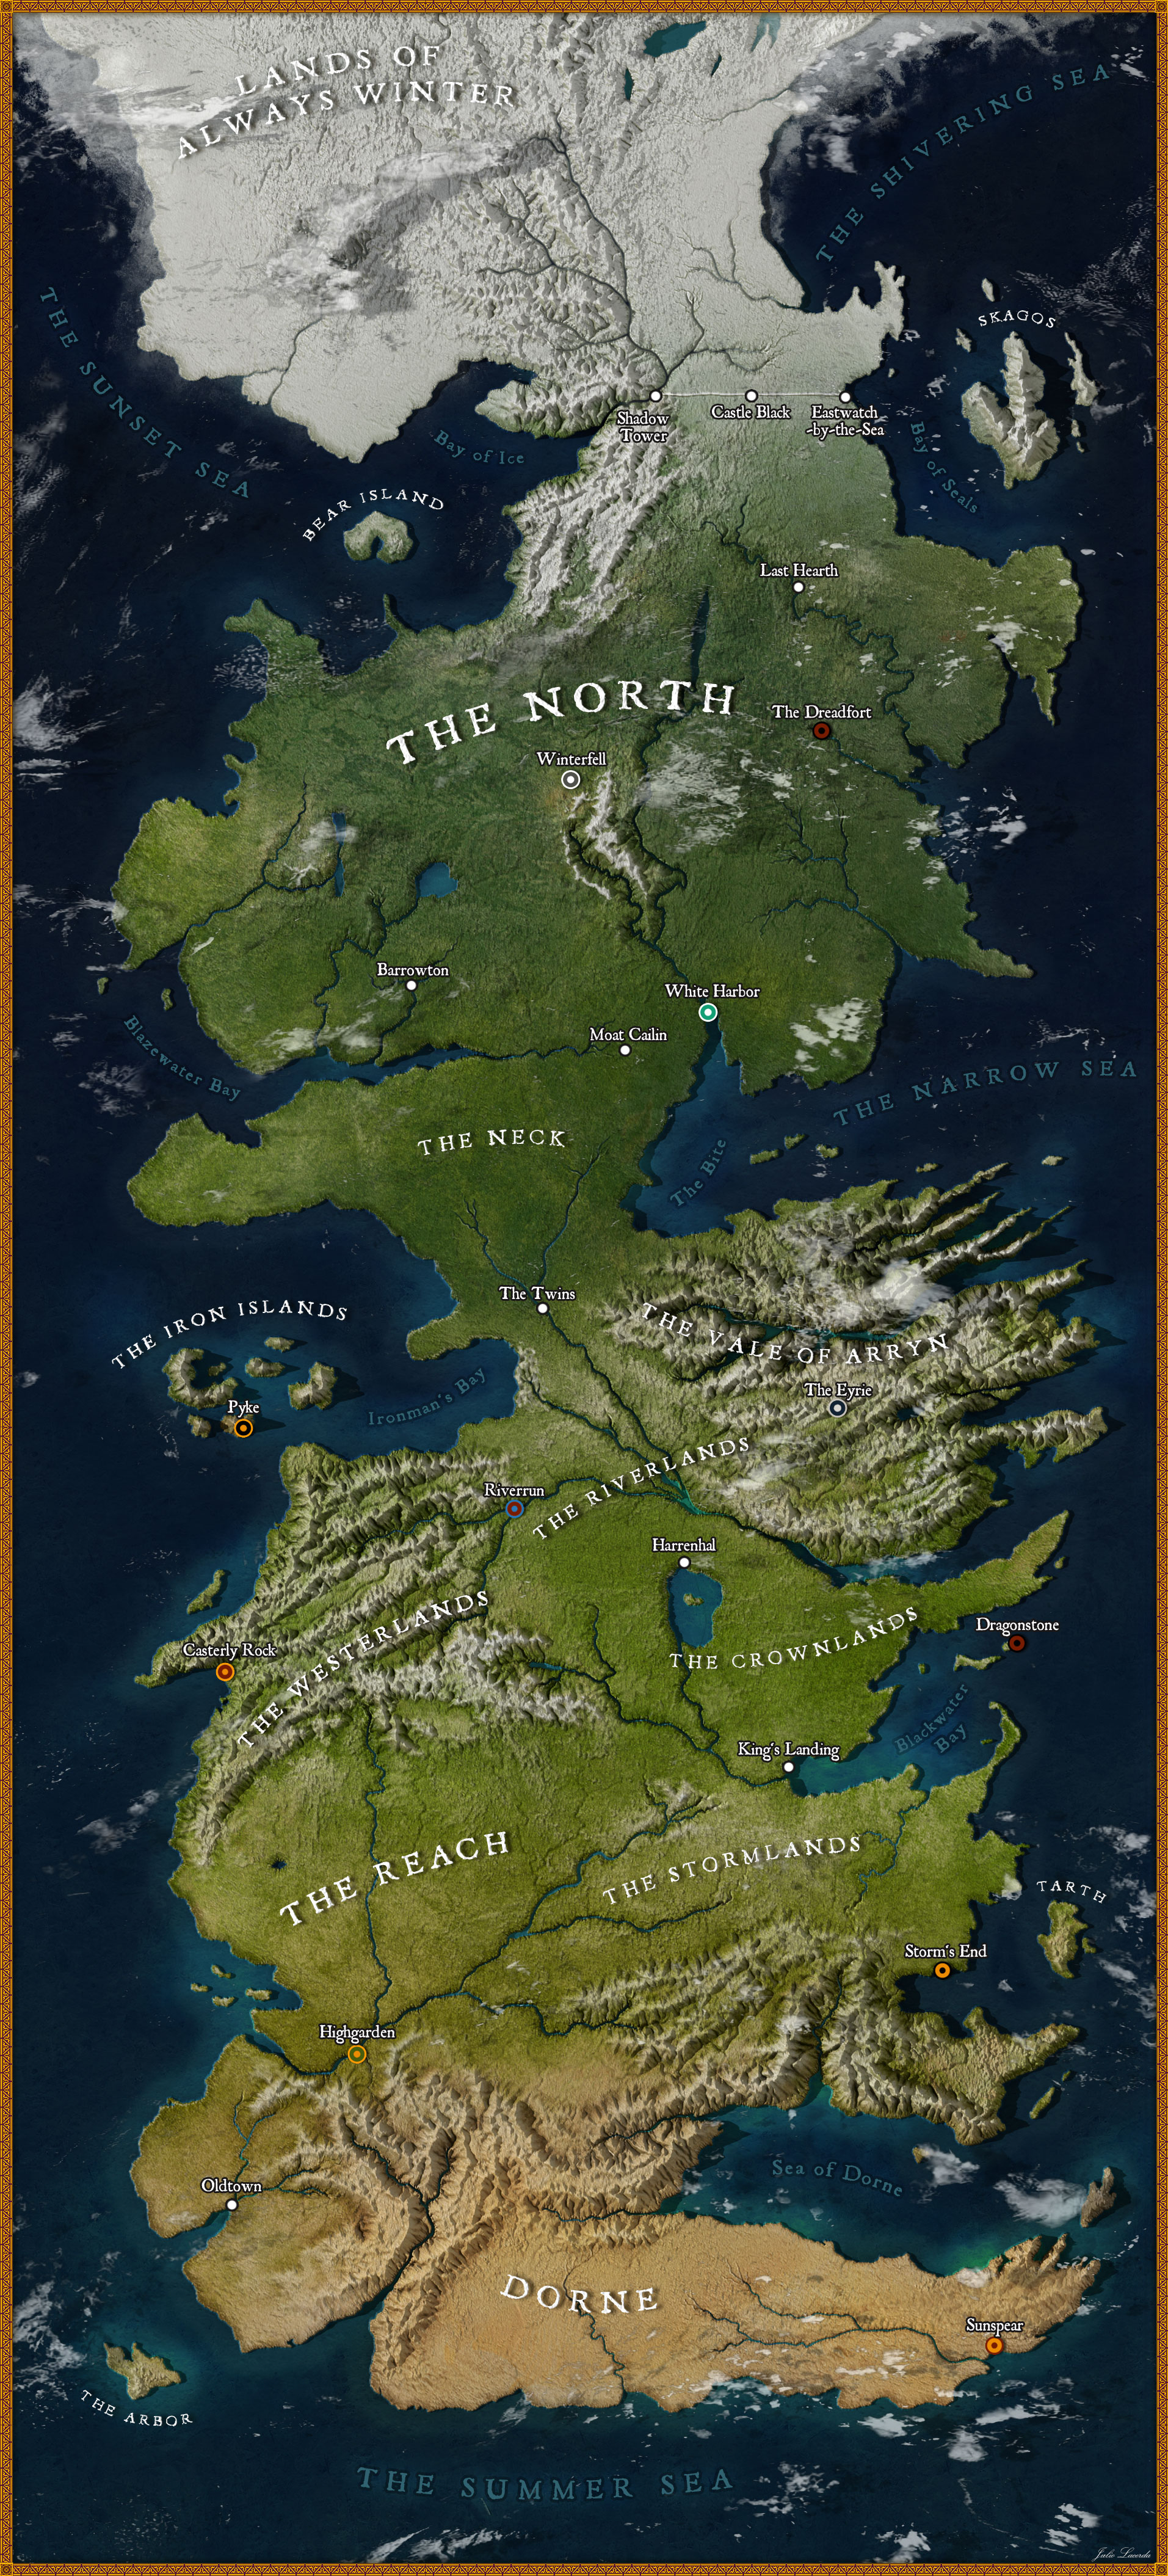 GoT Fan Recreates A High-Resolution Map Of Westeros And It ... Game Pf Thrones Map on walking dead map, winterfell map, a game of thrones, fire and blood, justified map, a clash of kings, narnia map, a storm of swords, gendry map, themes in a song of ice and fire, got map, jericho map, the prince of winterfell, downton abbey map, lord snow, the kingsroad, works based on a song of ice and fire, dallas map, a game of thrones: genesis, clash of kings map, sons of anarchy, camelot map, qarth map, world map, bloodline map, a storm of swords map, tales of dunk and egg, game of thrones - season 2, a golden crown, star trek map, spooksville map, guild wars 2 map, game of thrones - season 1, a game of thrones collectible card game, jersey shore map, the pointy end, valyria map, winter is coming,